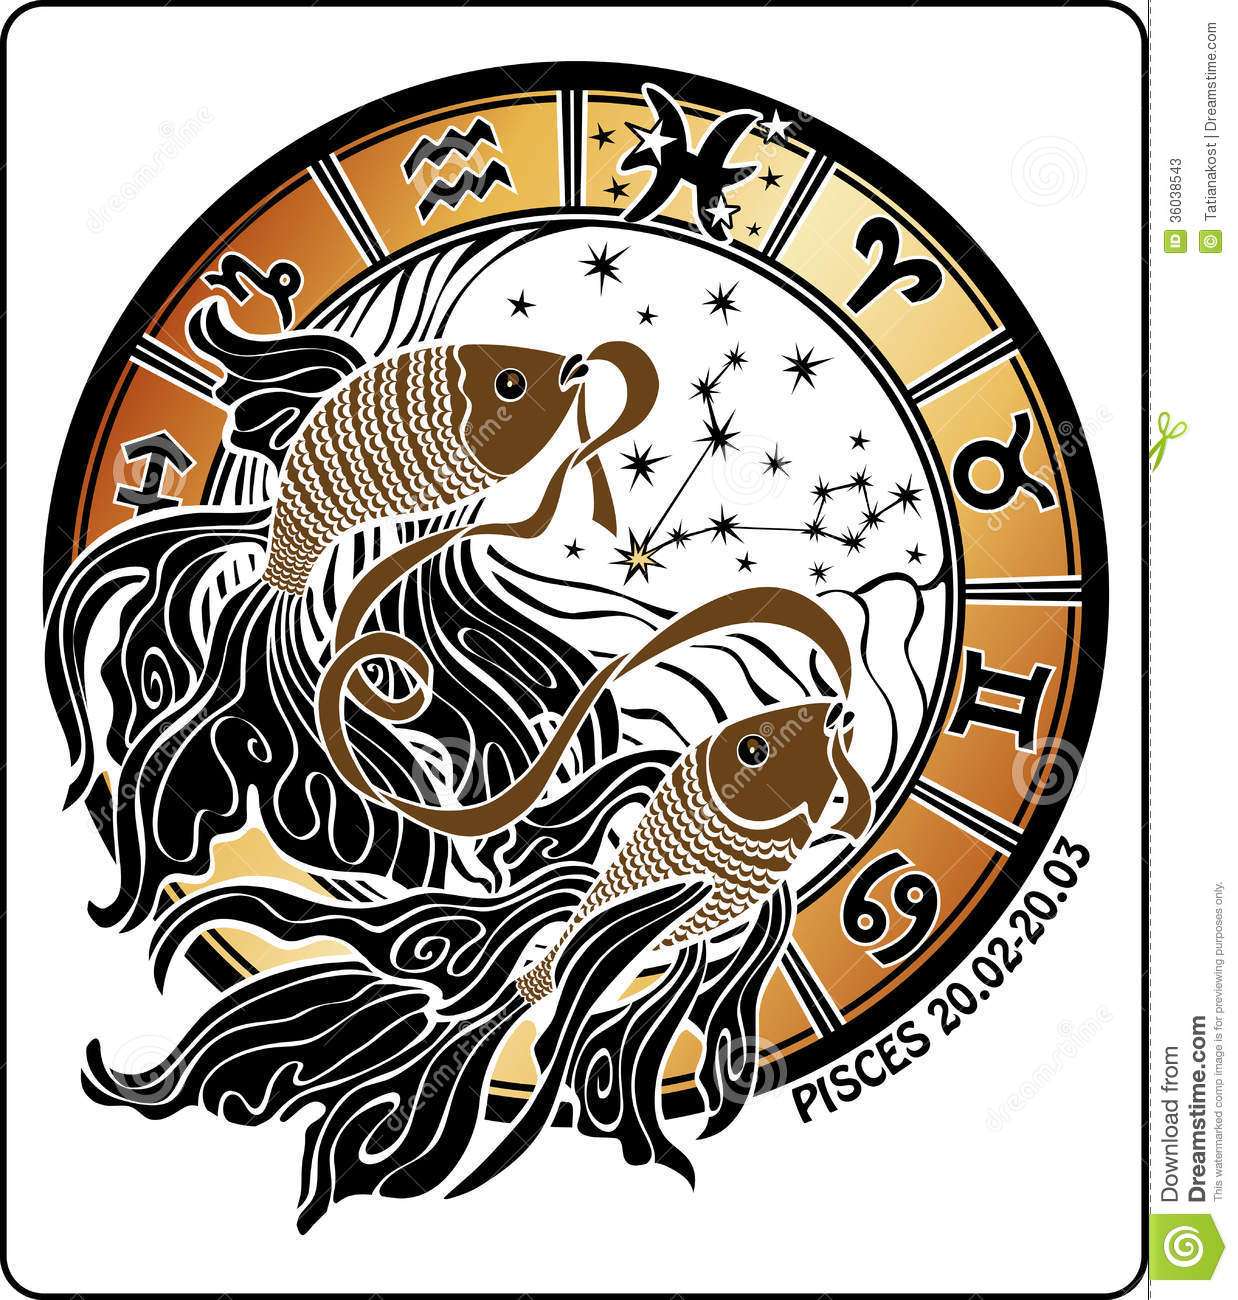 b9cd05a0f Two gold fish hold mouth tape behind them are symbols of all zodiac signs  Horoscope circle. On a white background.Graphic Illustration.